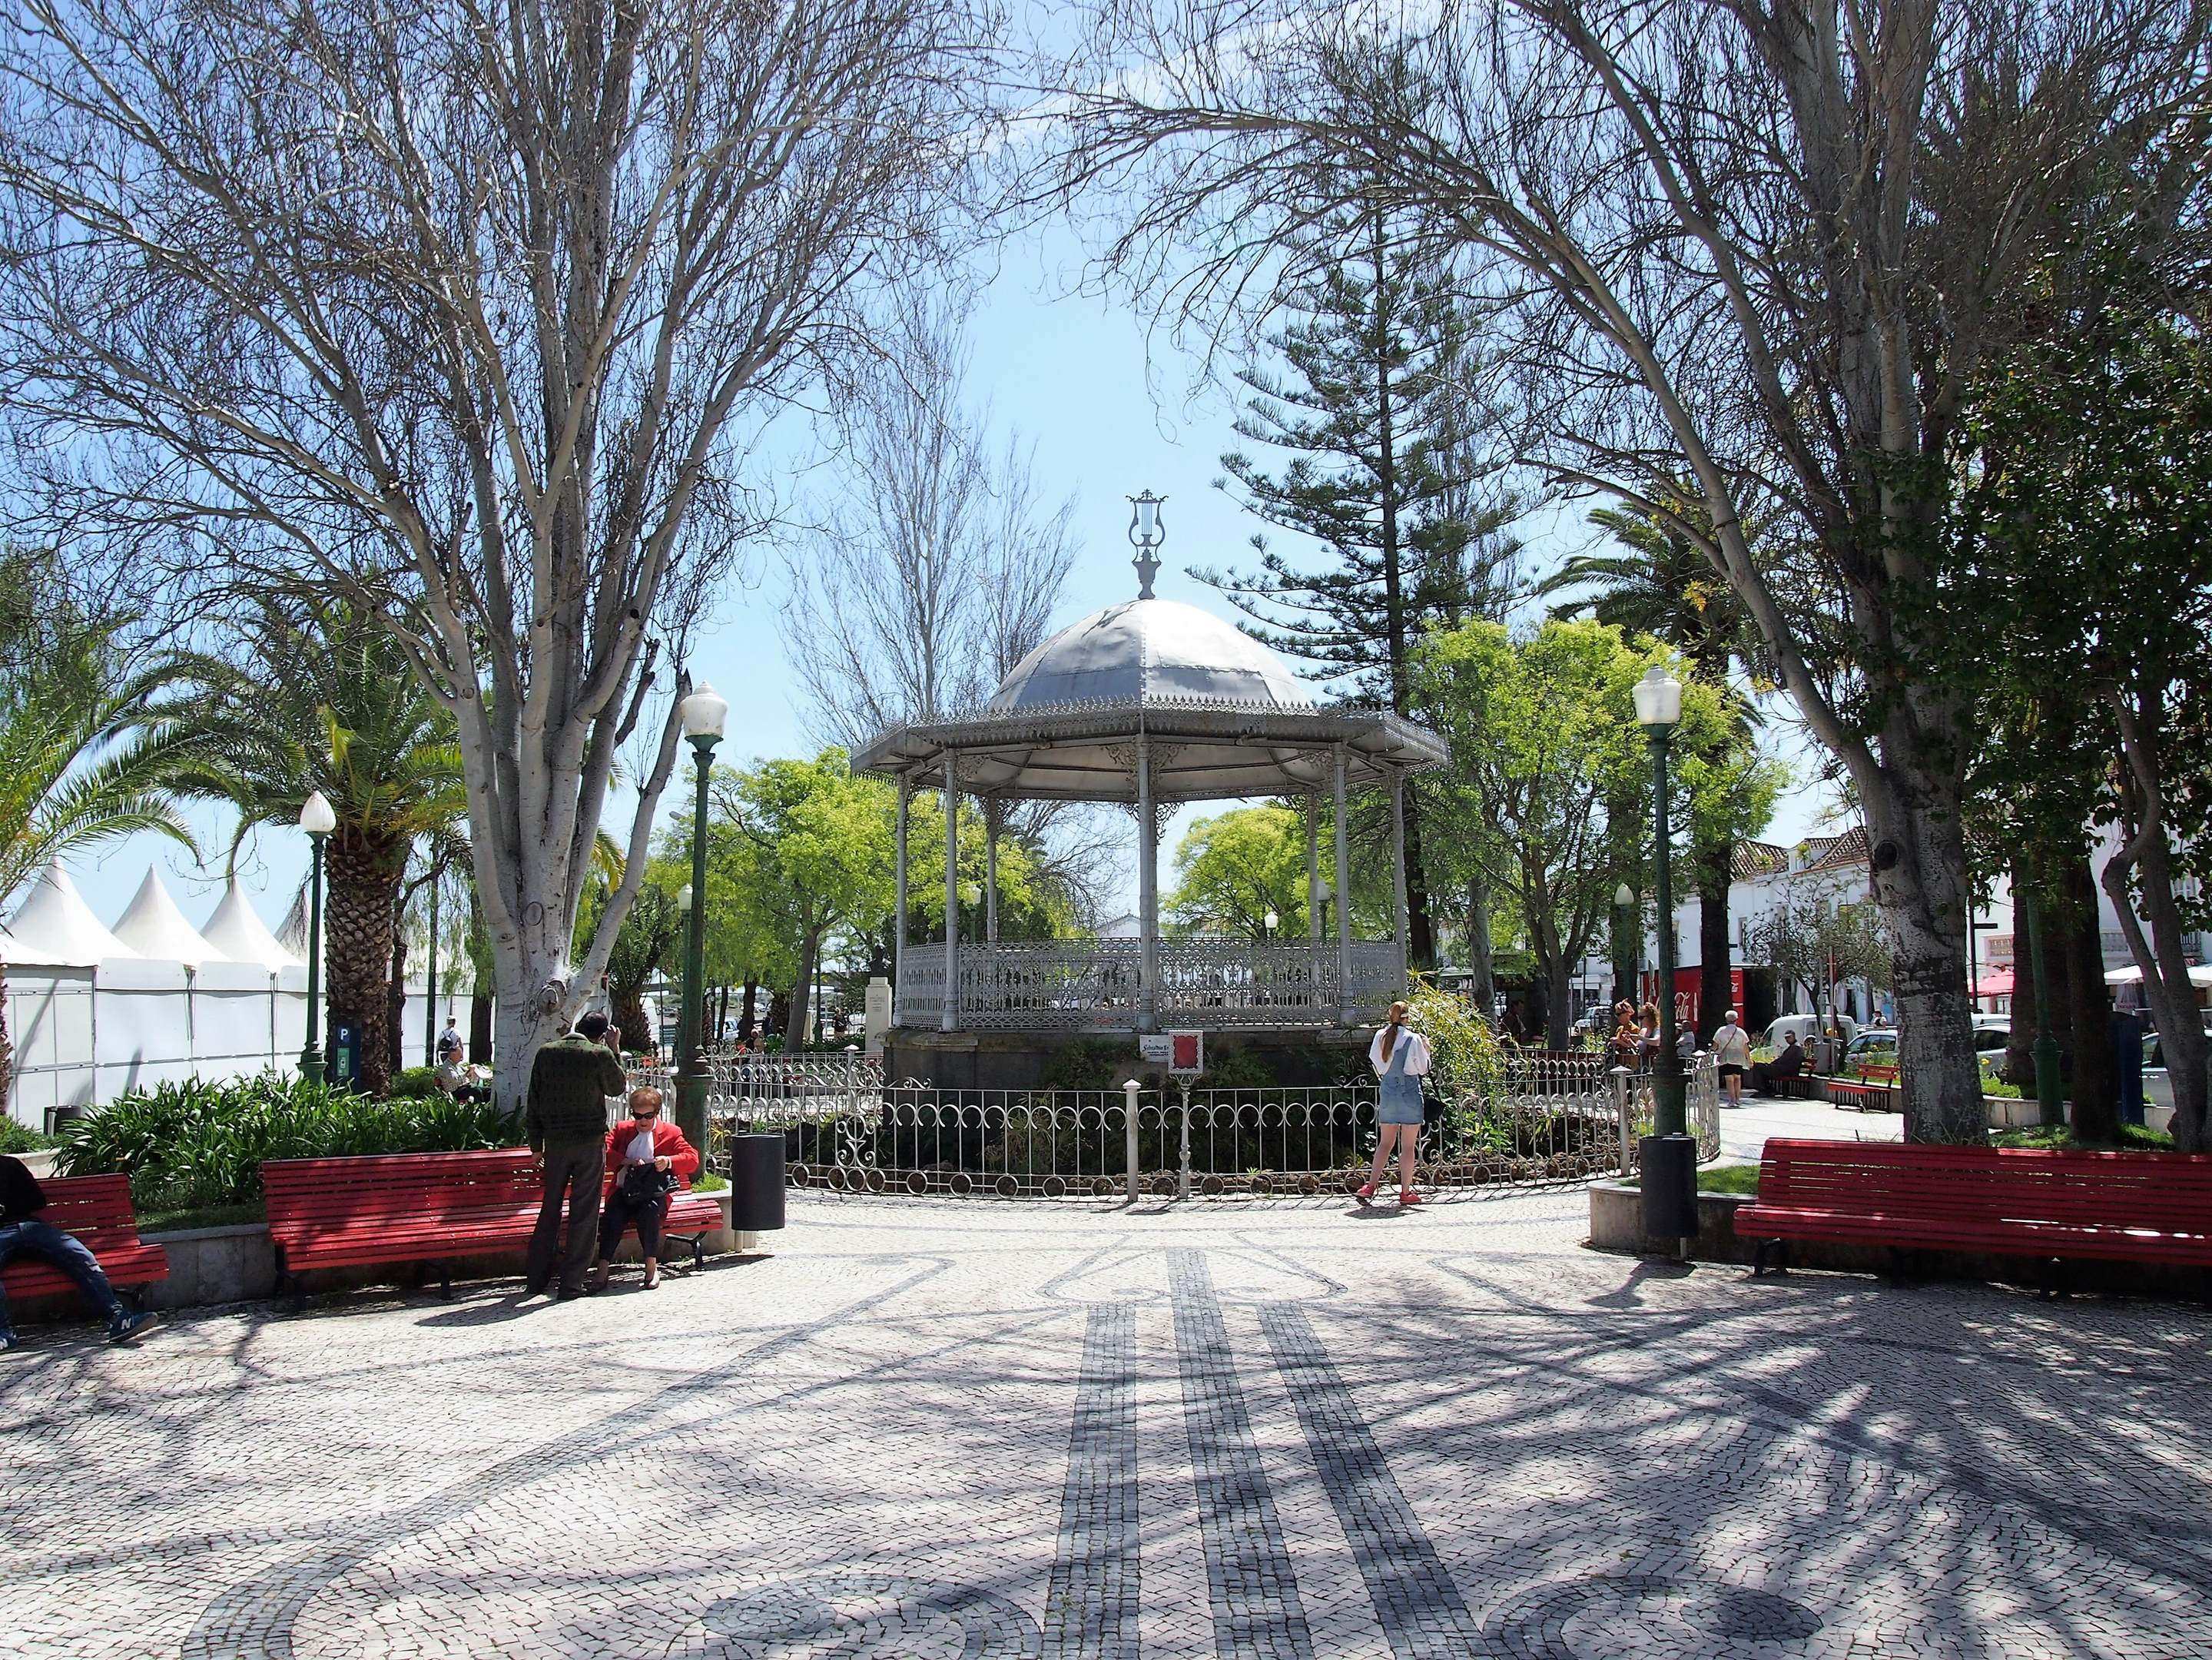 Bandstand and gardens close to the Mercado da Ribeira, Tavira